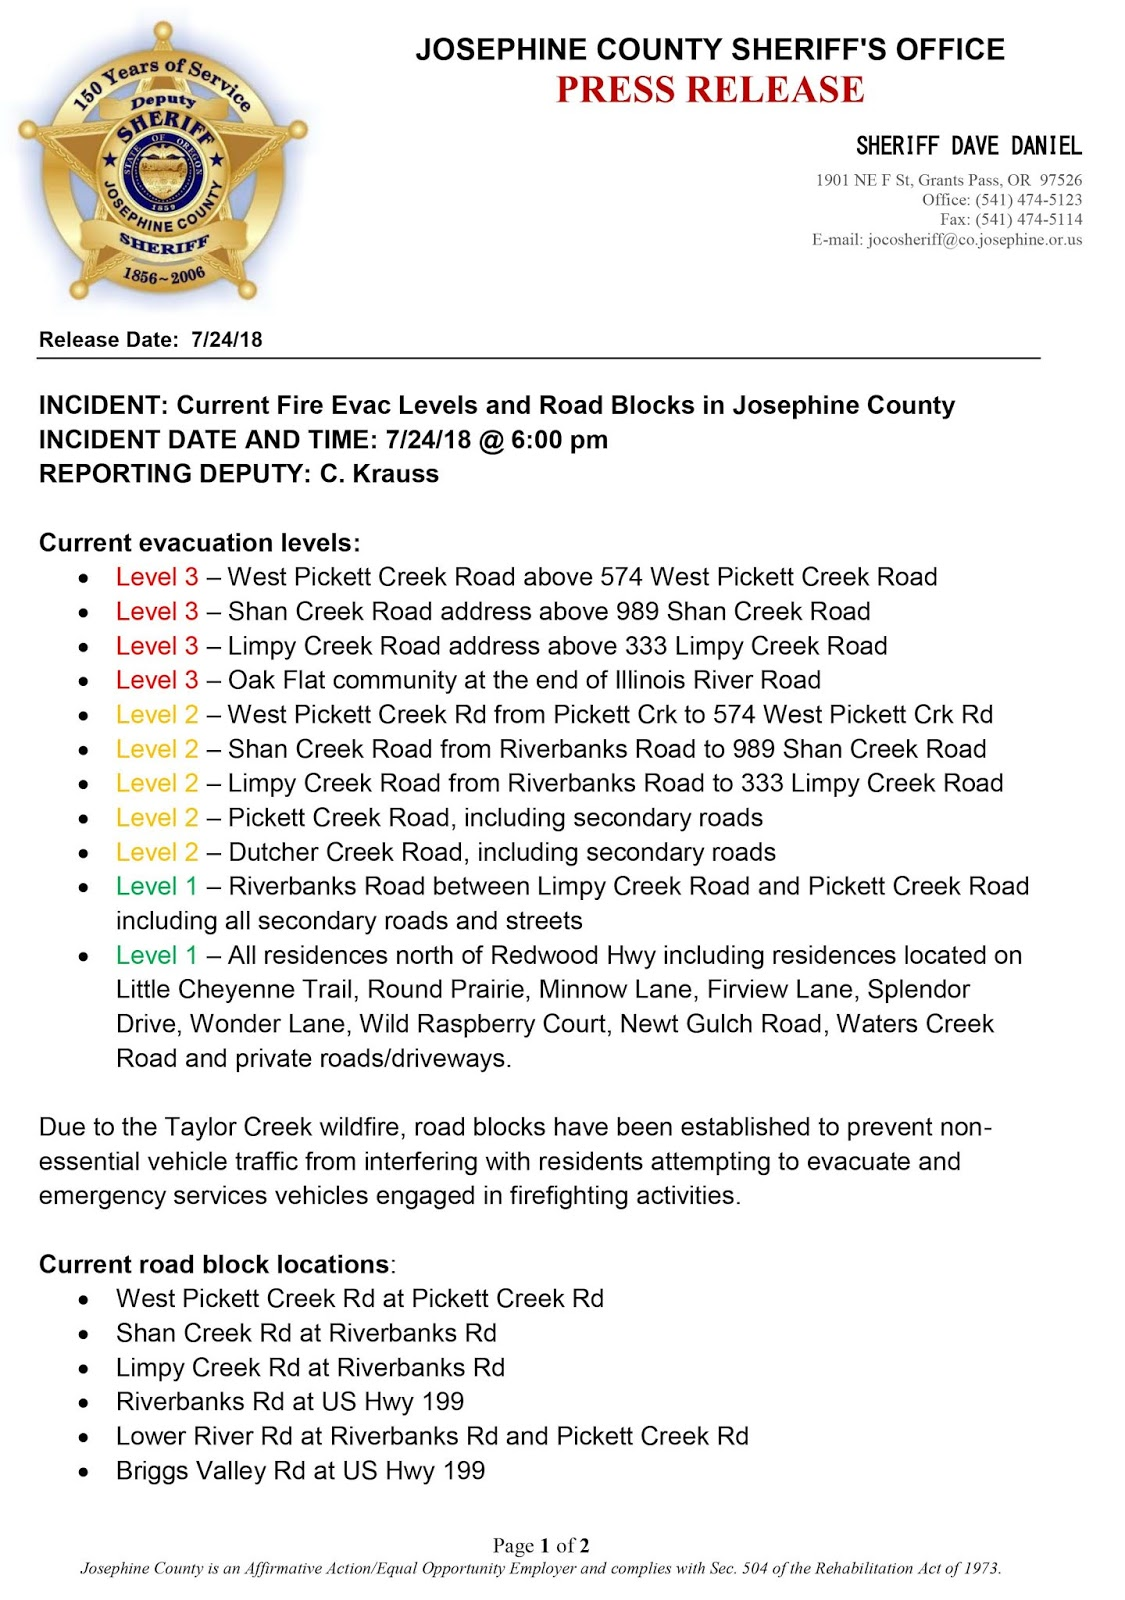 here is the summary of current evacuations and road blocks in josephine county as of 6 pm july 24